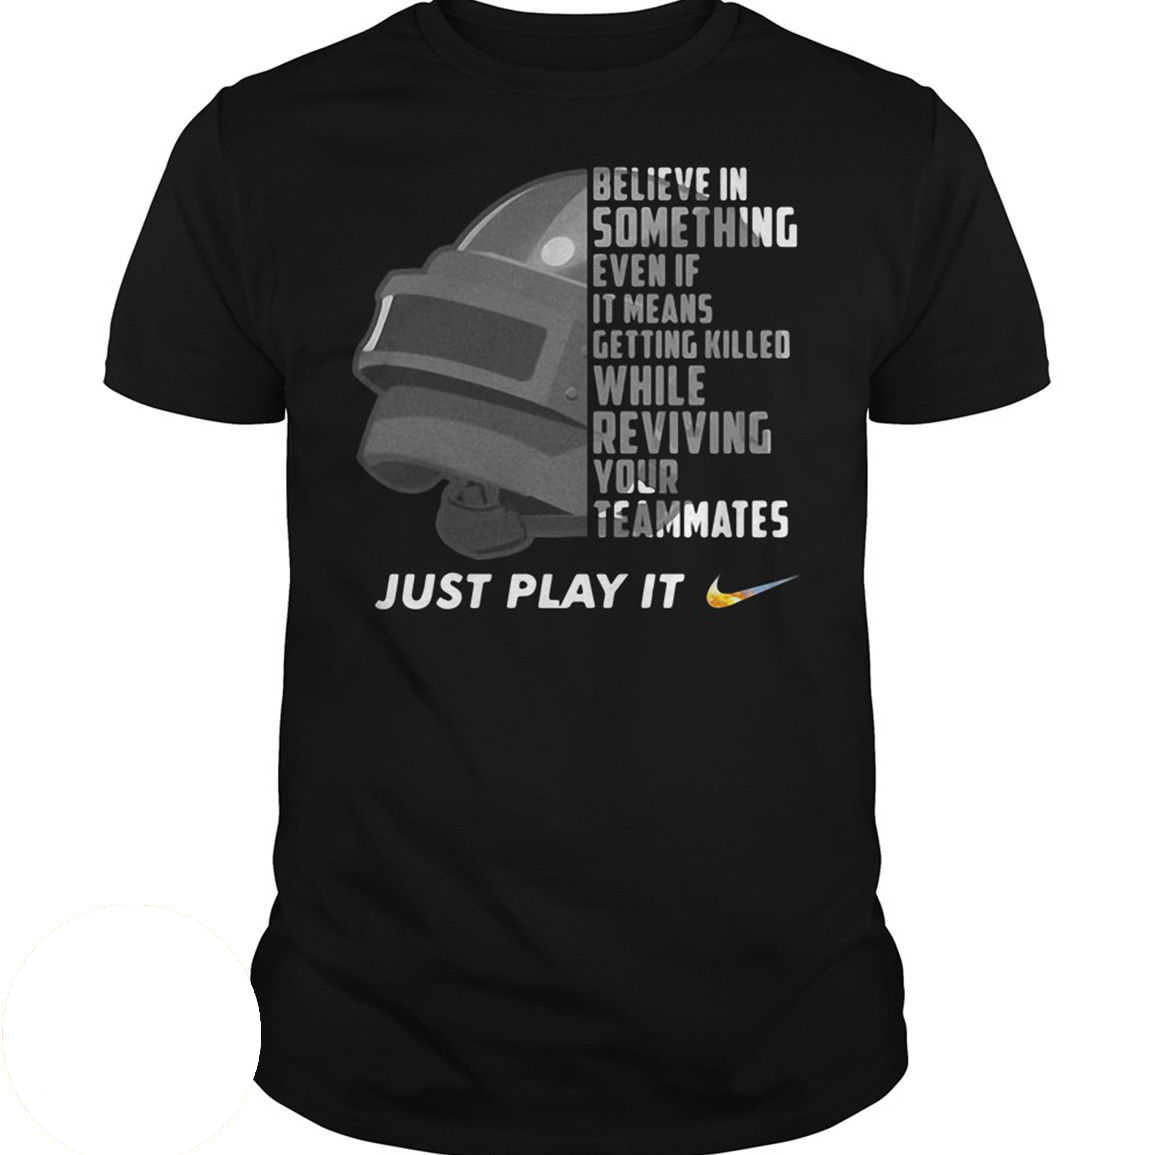 Just Play It PUBG Believe In Something Even PlayerUnknown's Battlegrounds T Shirt Cartoon Short Sleeve Free Shipping